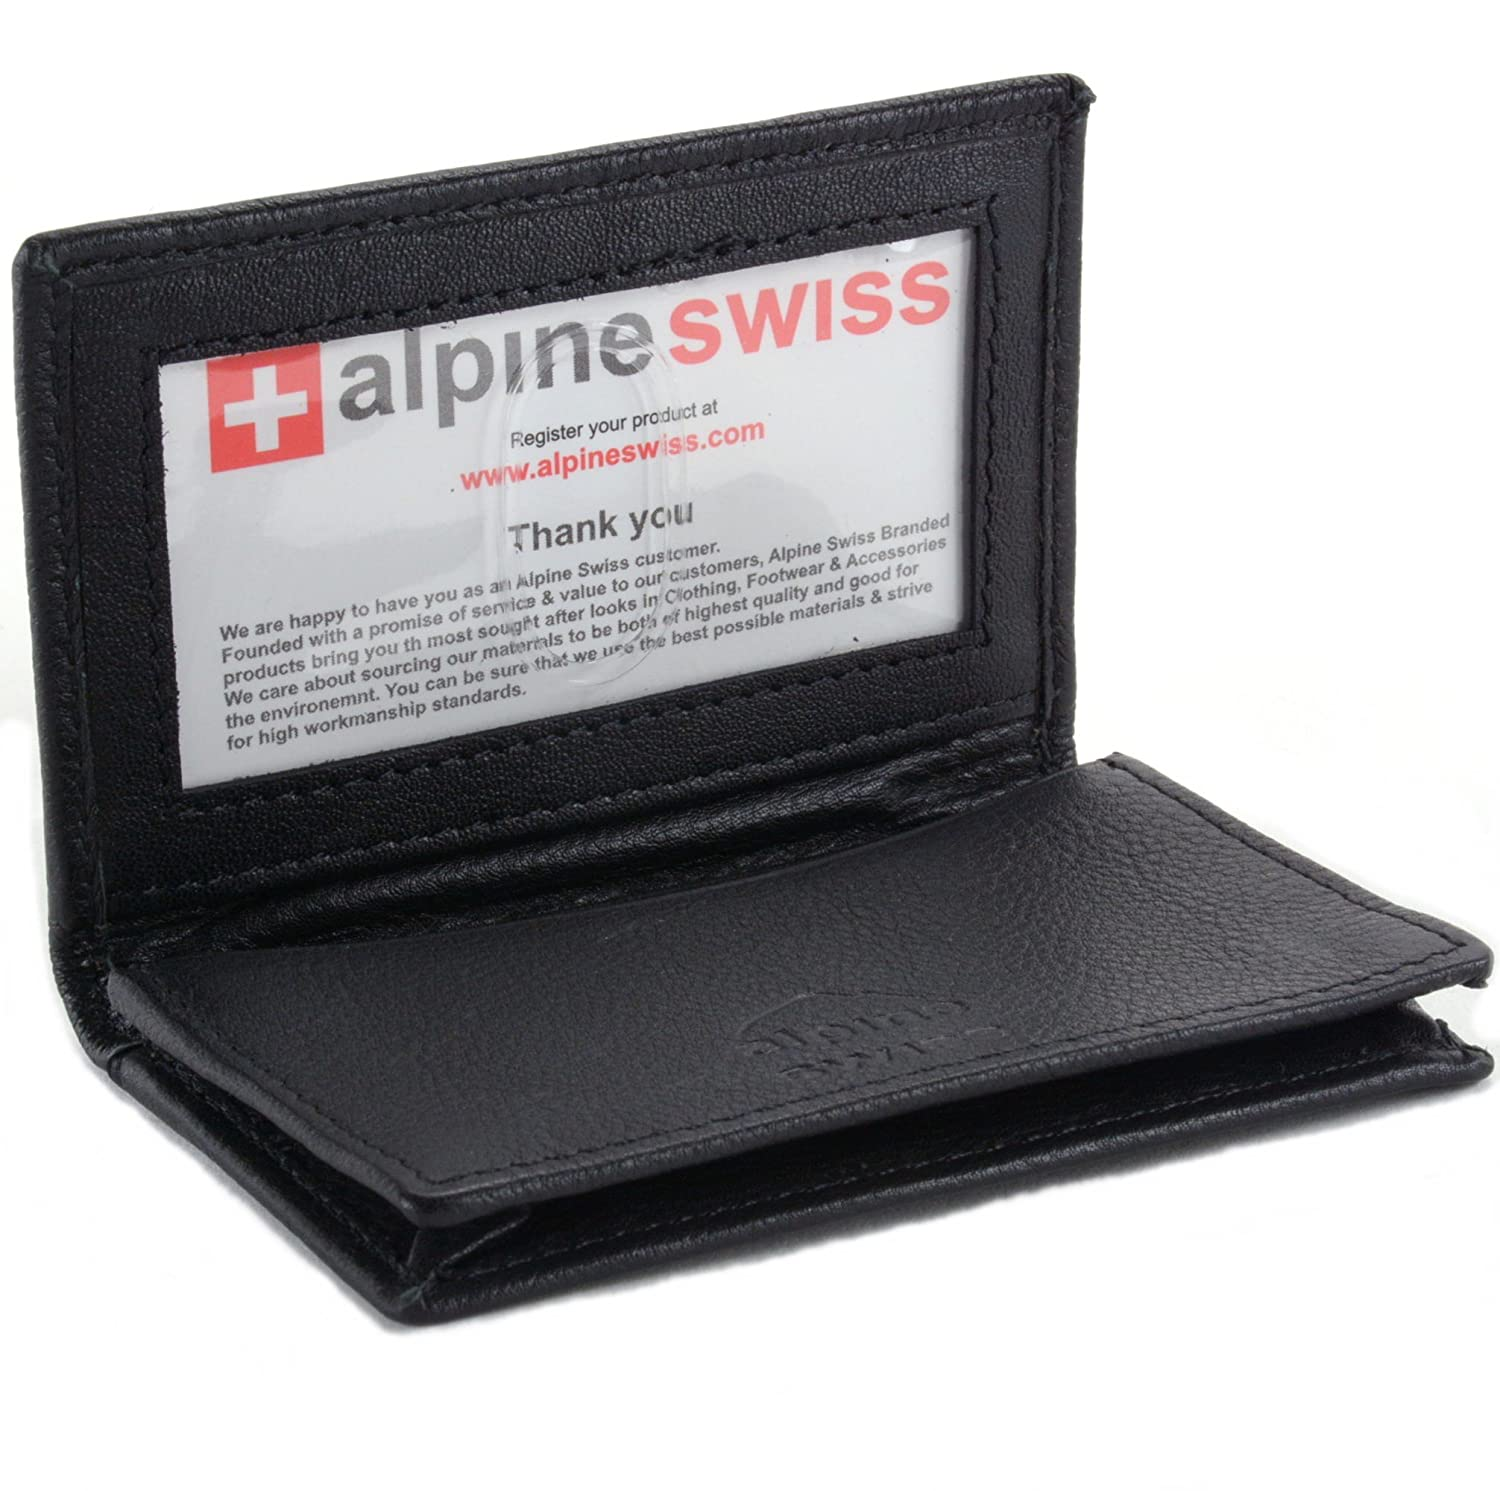 Alpine swiss classic leather business card wallet with id window alpine swiss classic leather business card wallet with id window expandable pocket thin slim billfold credit card case at amazon mens clothing store colourmoves